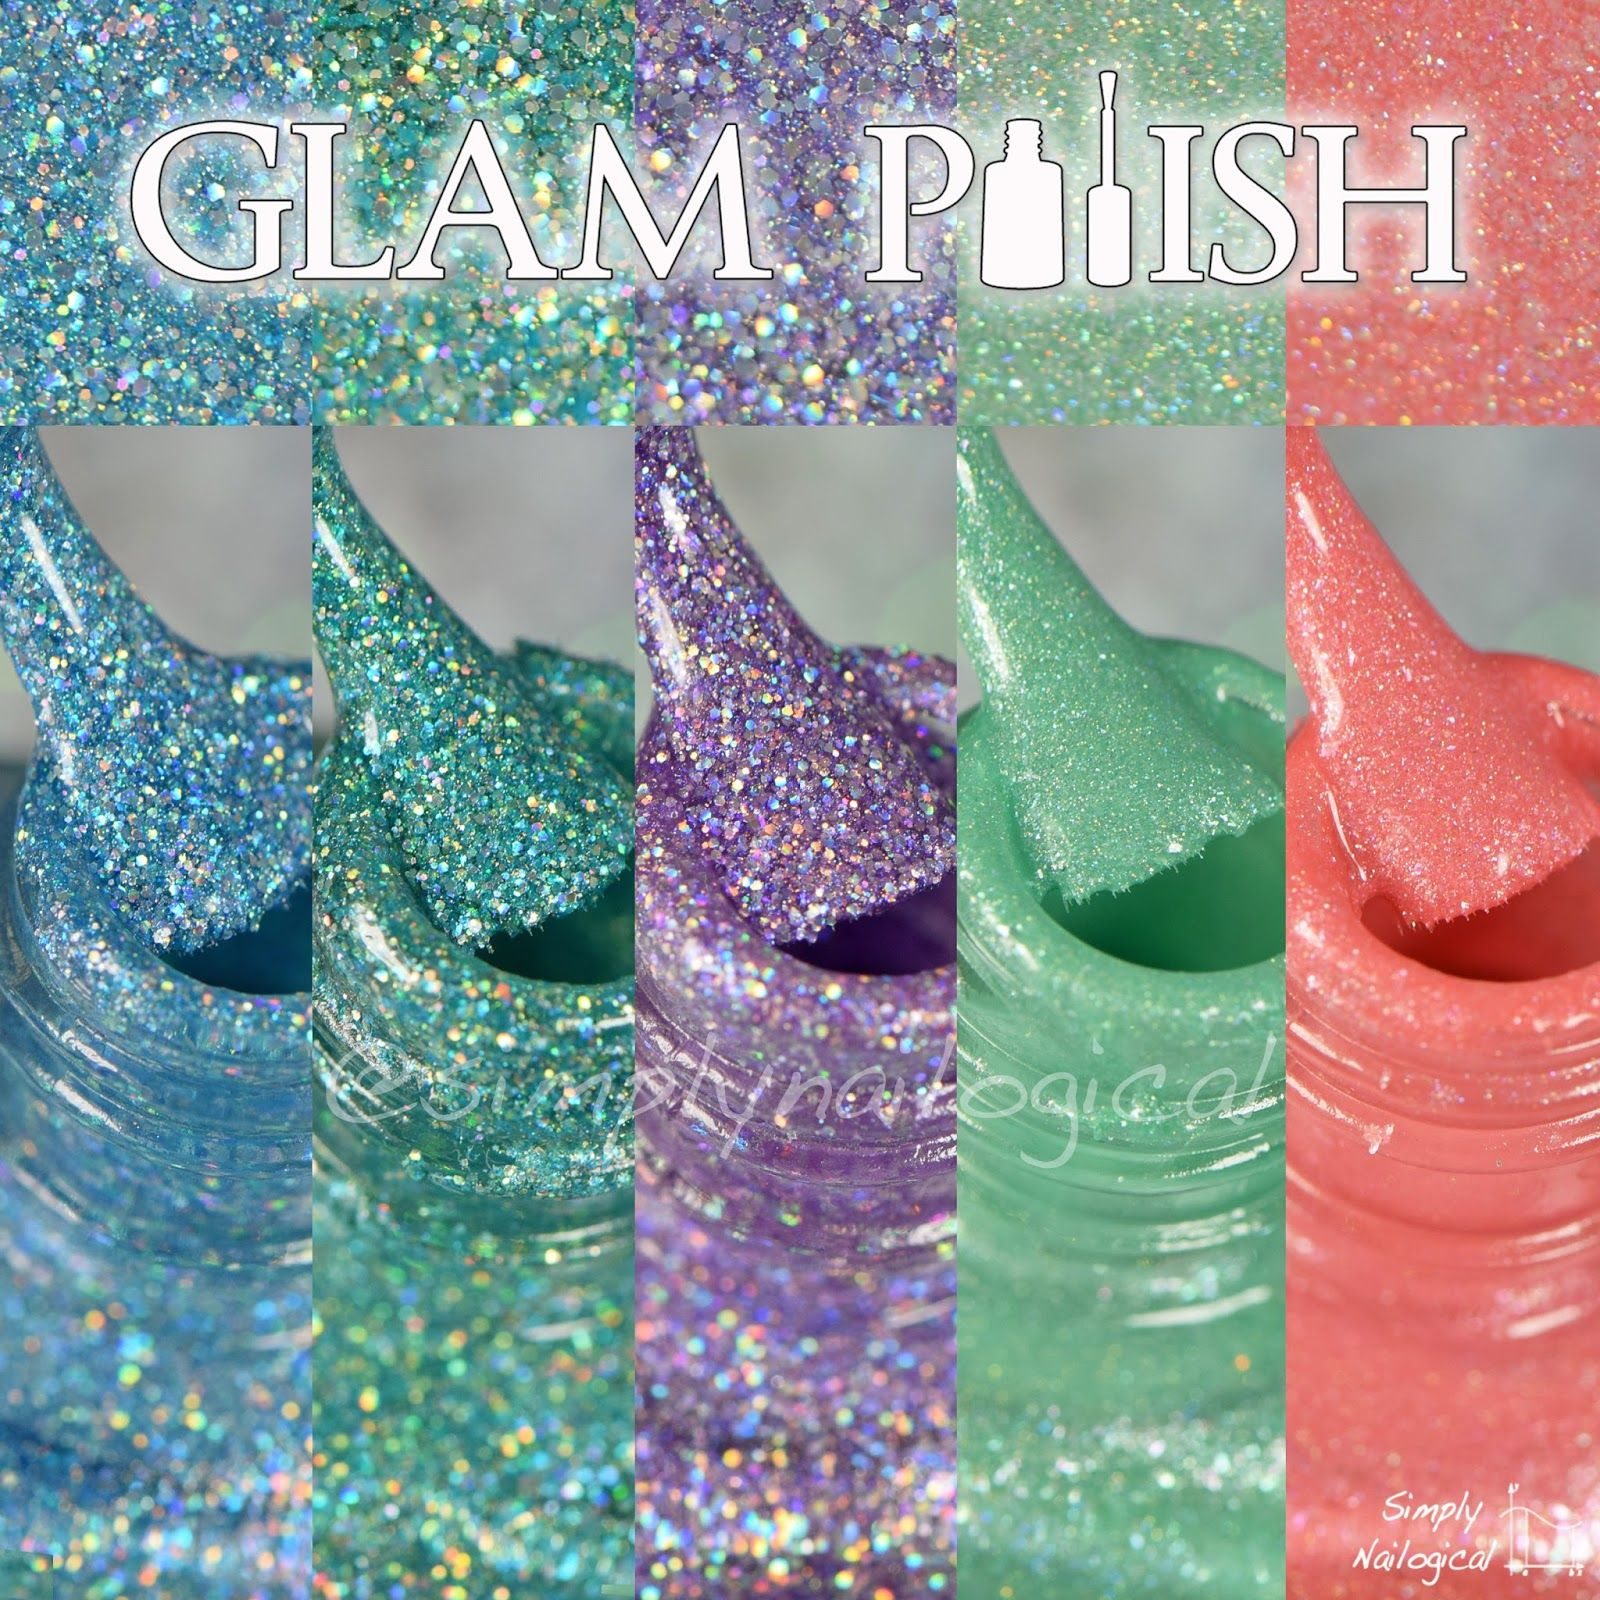 Glam Polish: Holos from the December 2014 collection by simplynailogical